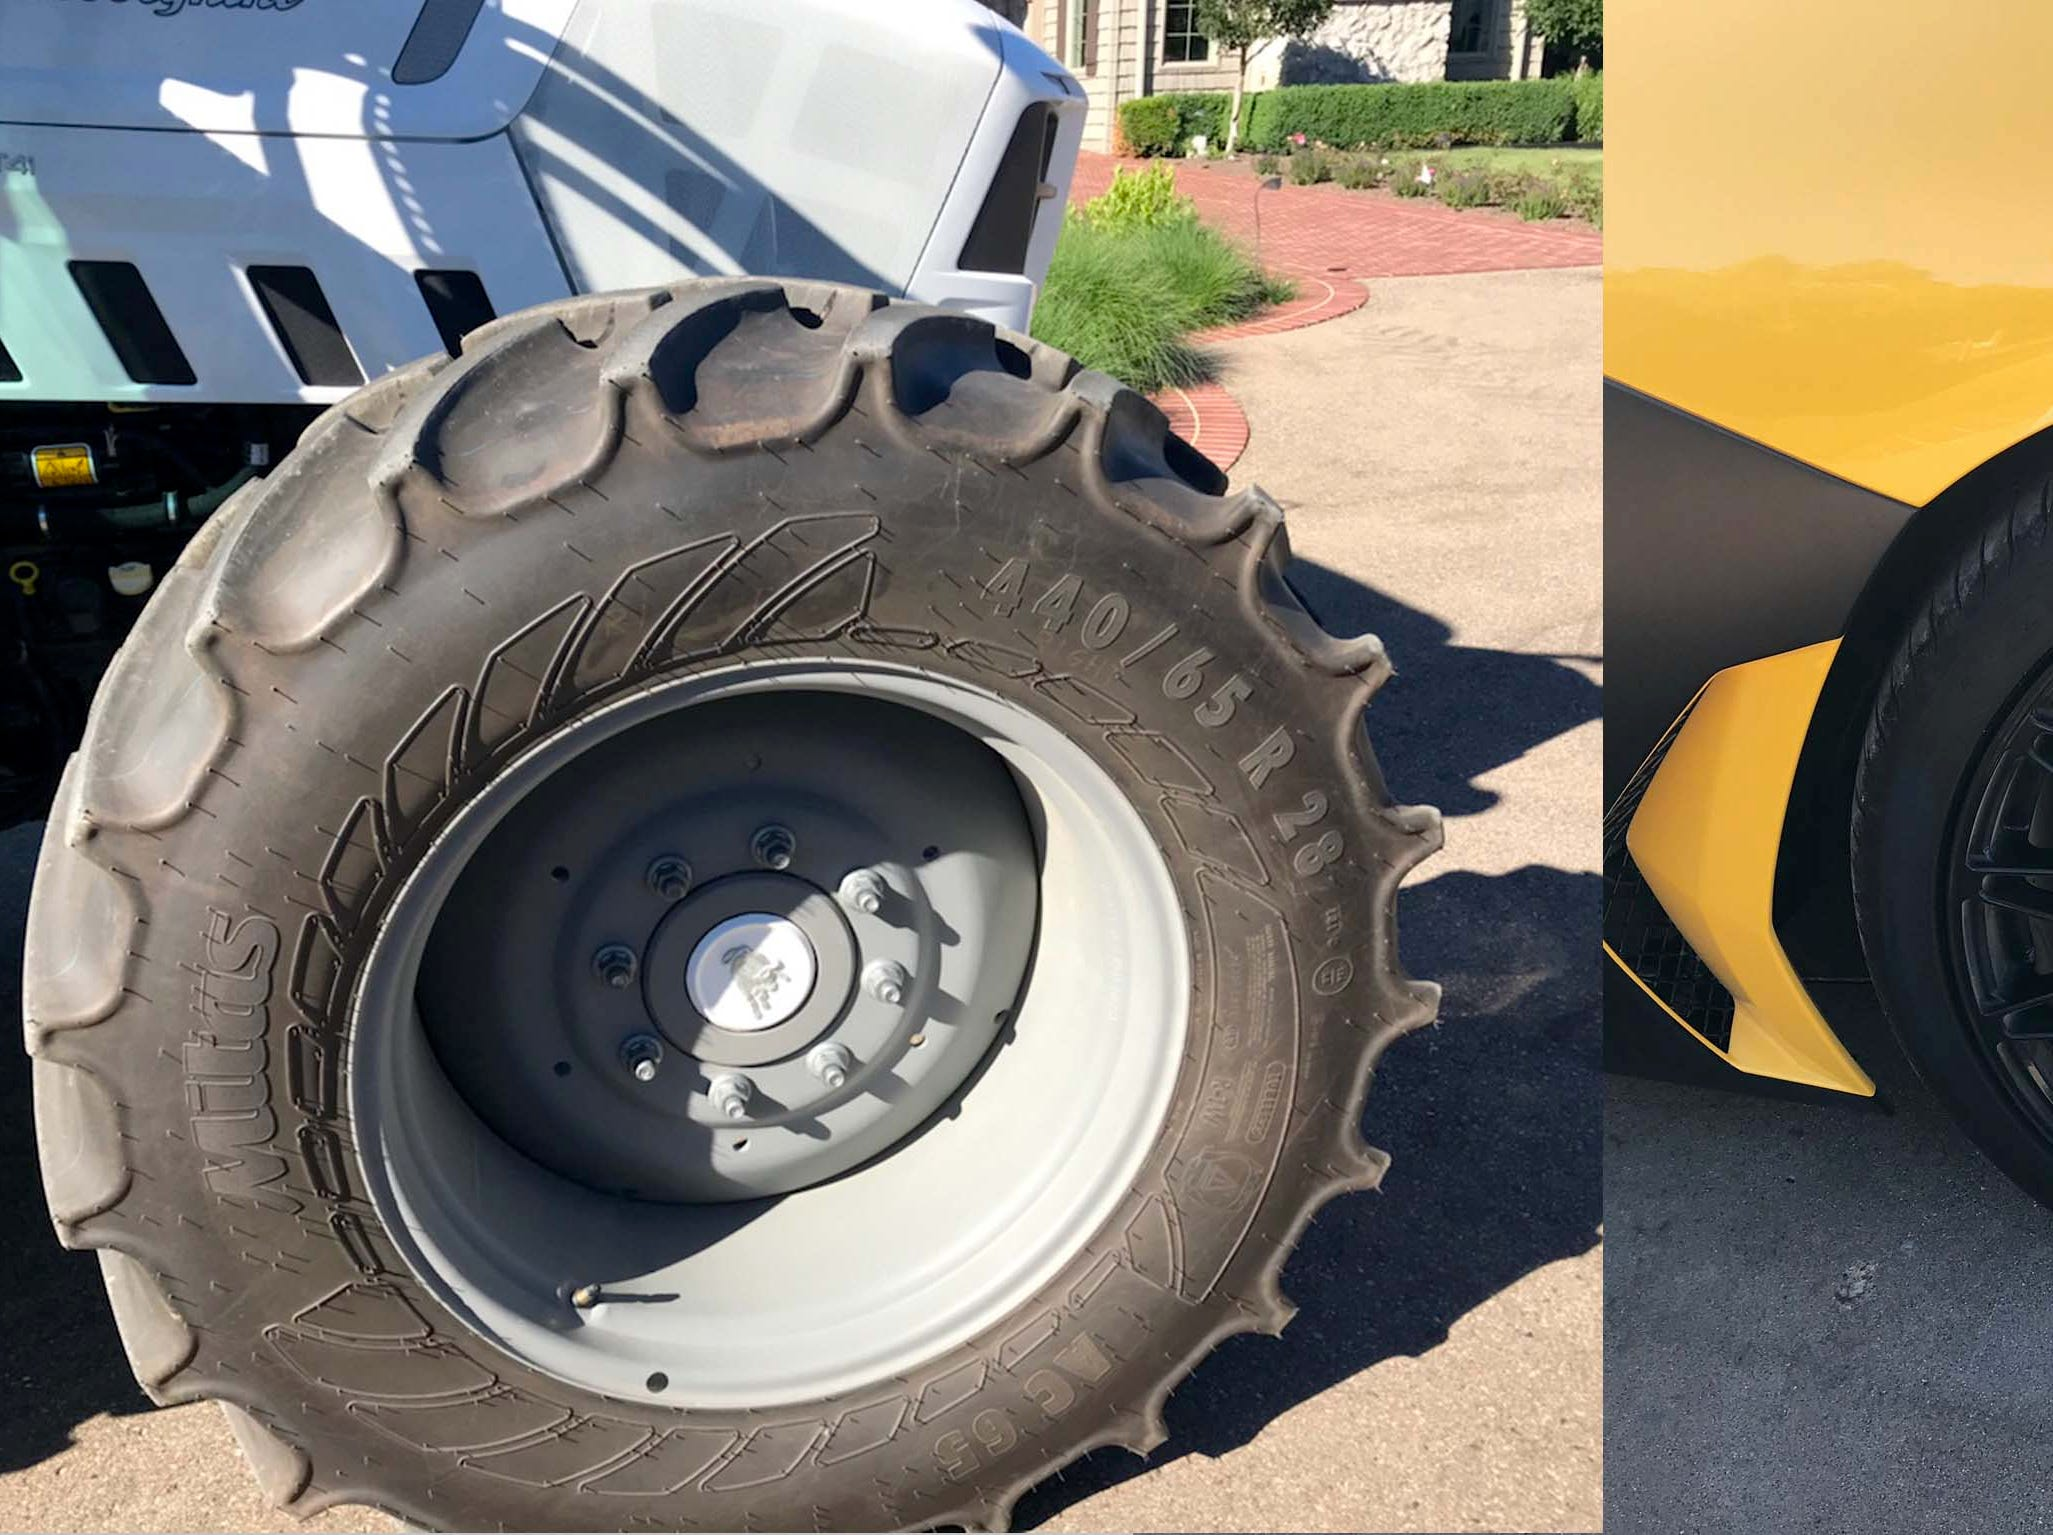 The 28-inch tall-by-14-inch wide Lamborghini Aventador rear tires, right, are huge, but they're dwarfed by the Nitro tractor's 40-inch x 17.3-inch rears that anchor a sophisticated, 4WD air suspension.